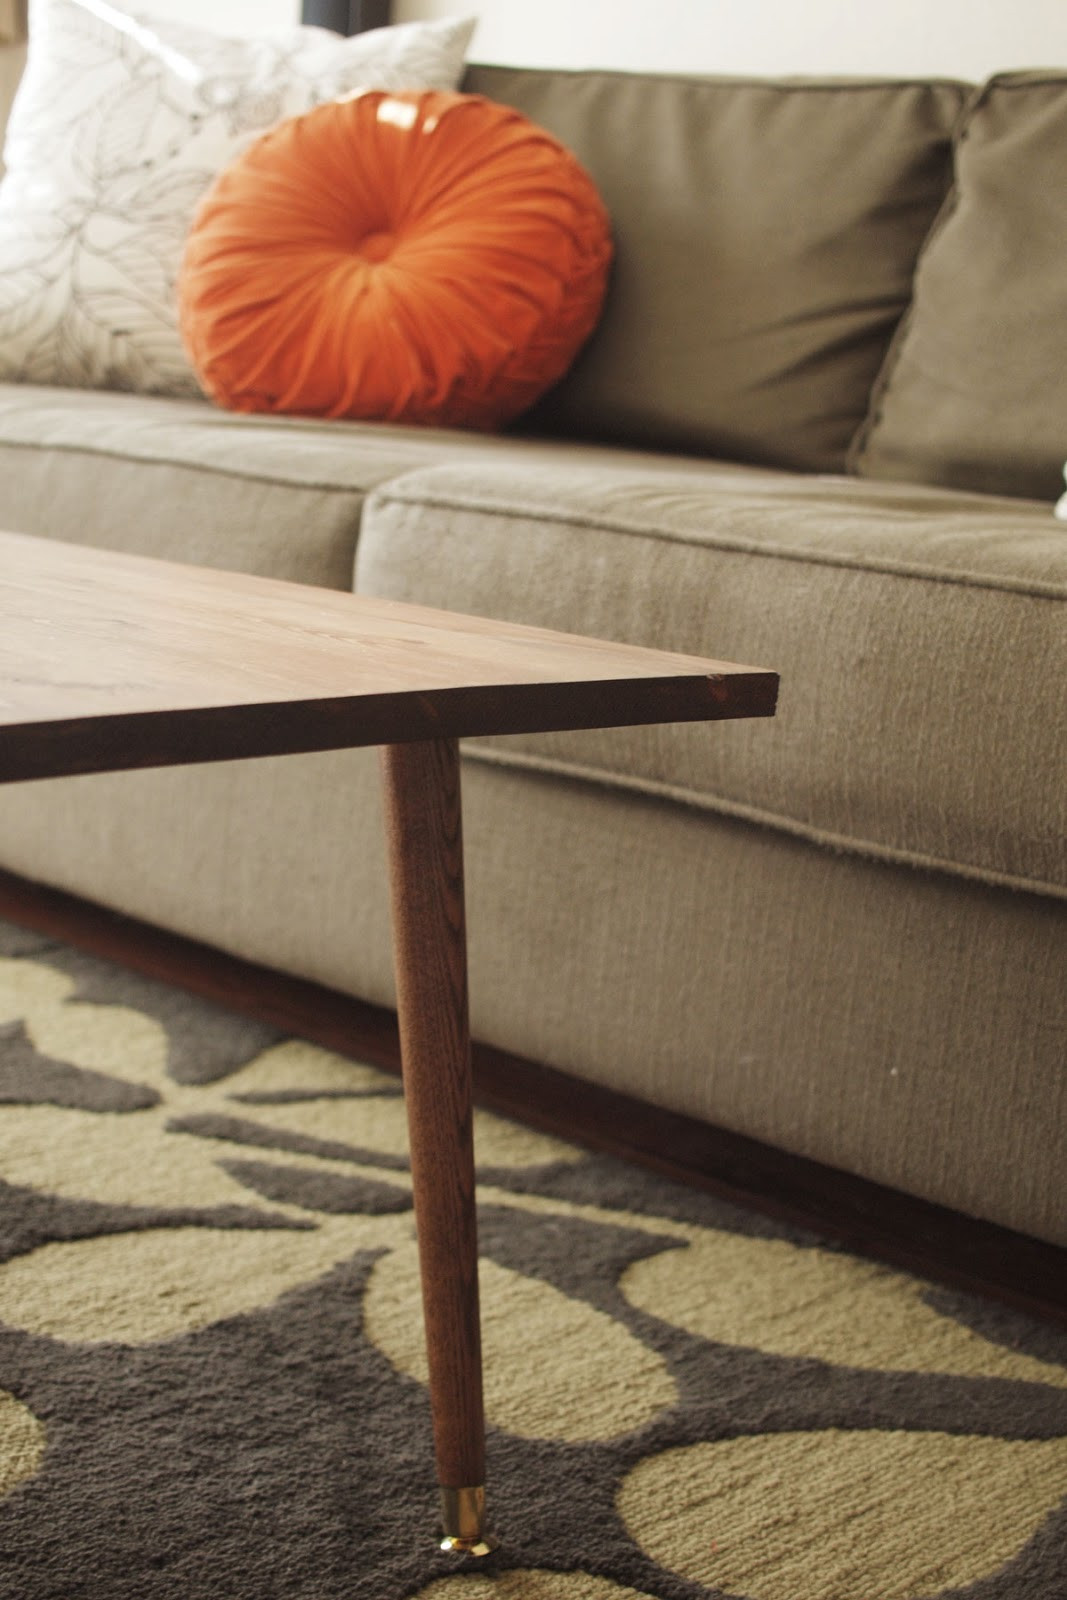 Best ideas about DIY Modern Coffee Table . Save or Pin DIY Mid Century Modern Coffee Table A Pair of Pears Now.